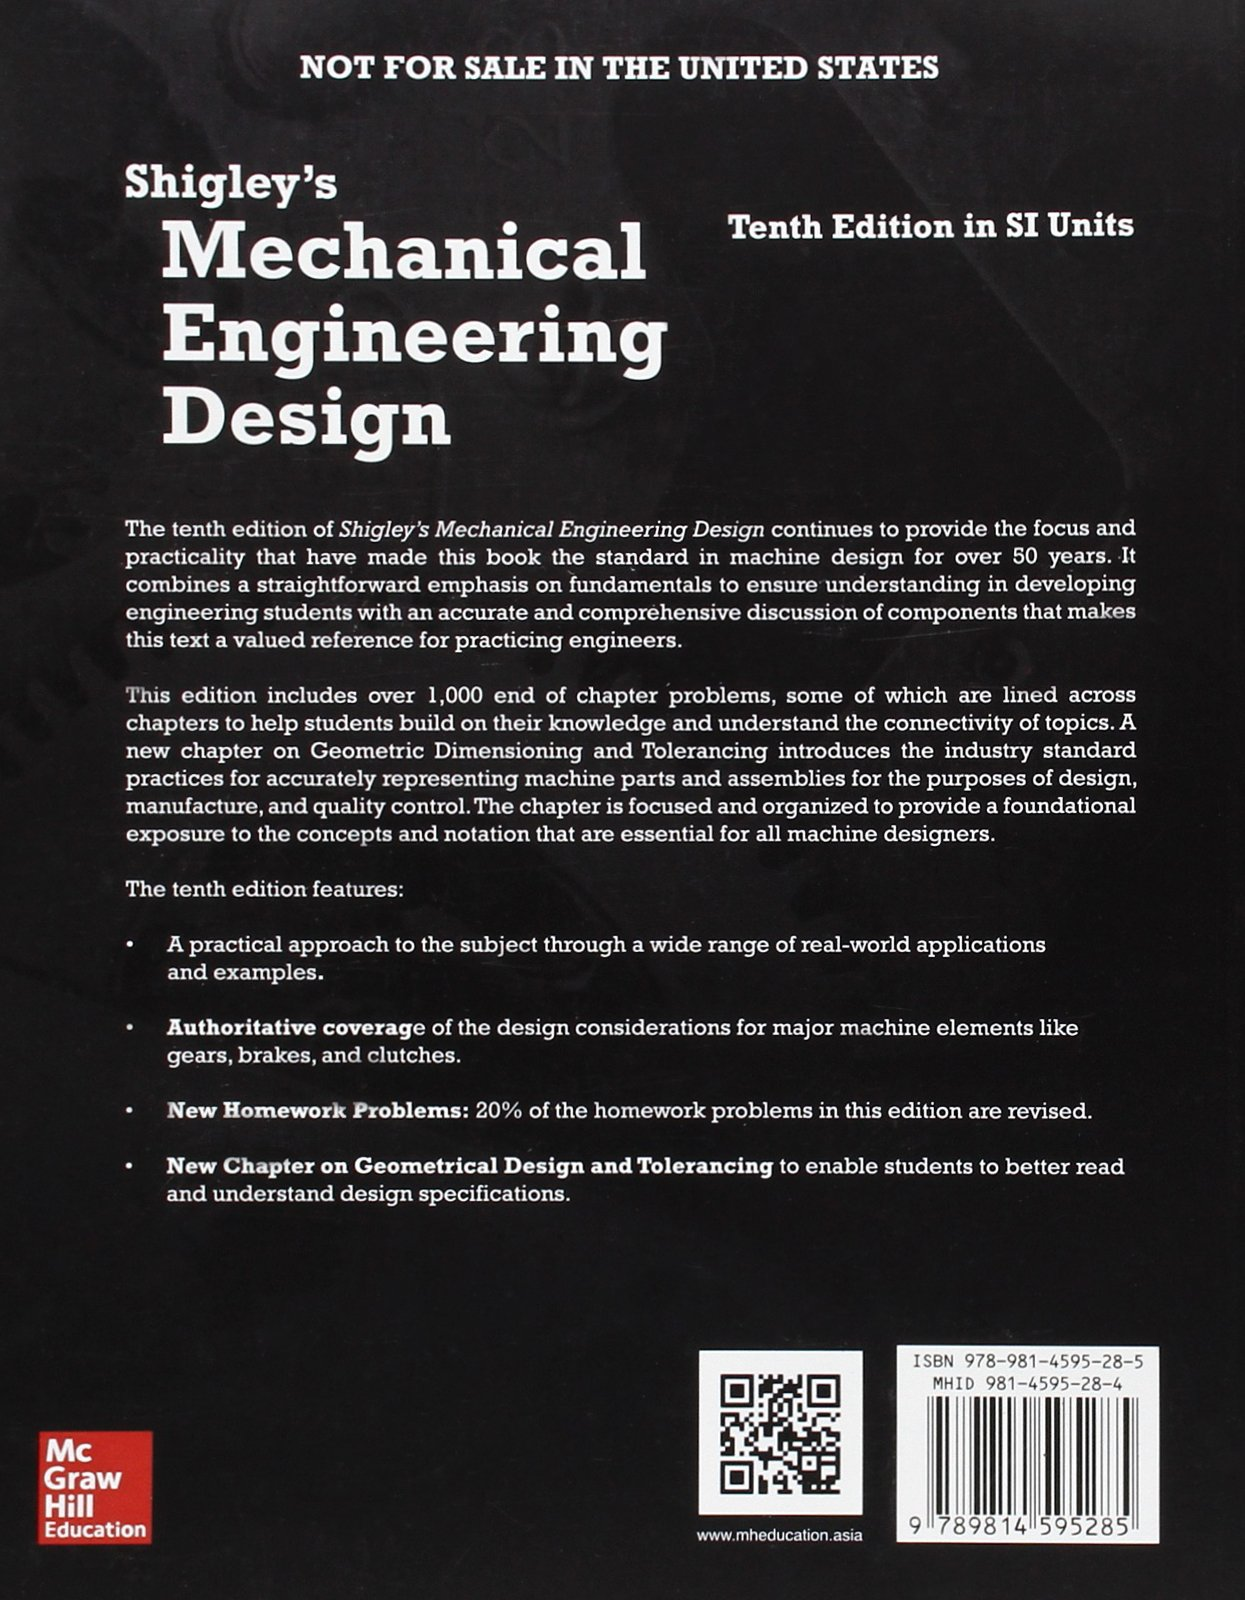 Buy Shigley S Mechanical Engineering Design In Si Units Book Online At Low Prices In India Shigley S Mechanical Engineering Design In Si Units Reviews Ratings Amazon In